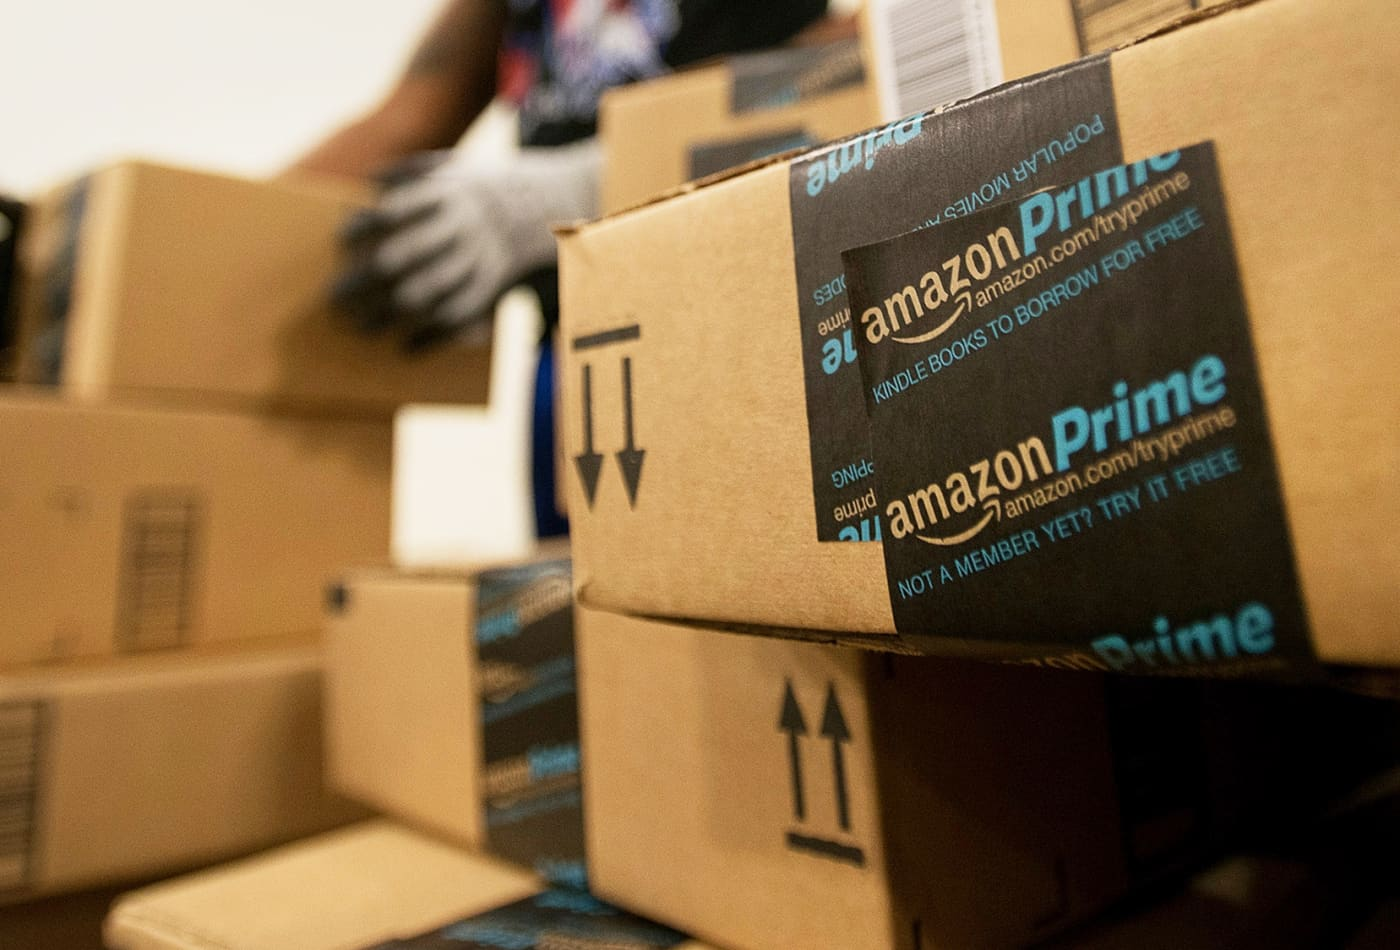 6 Amazon Prime Day deals on products I actually use every day